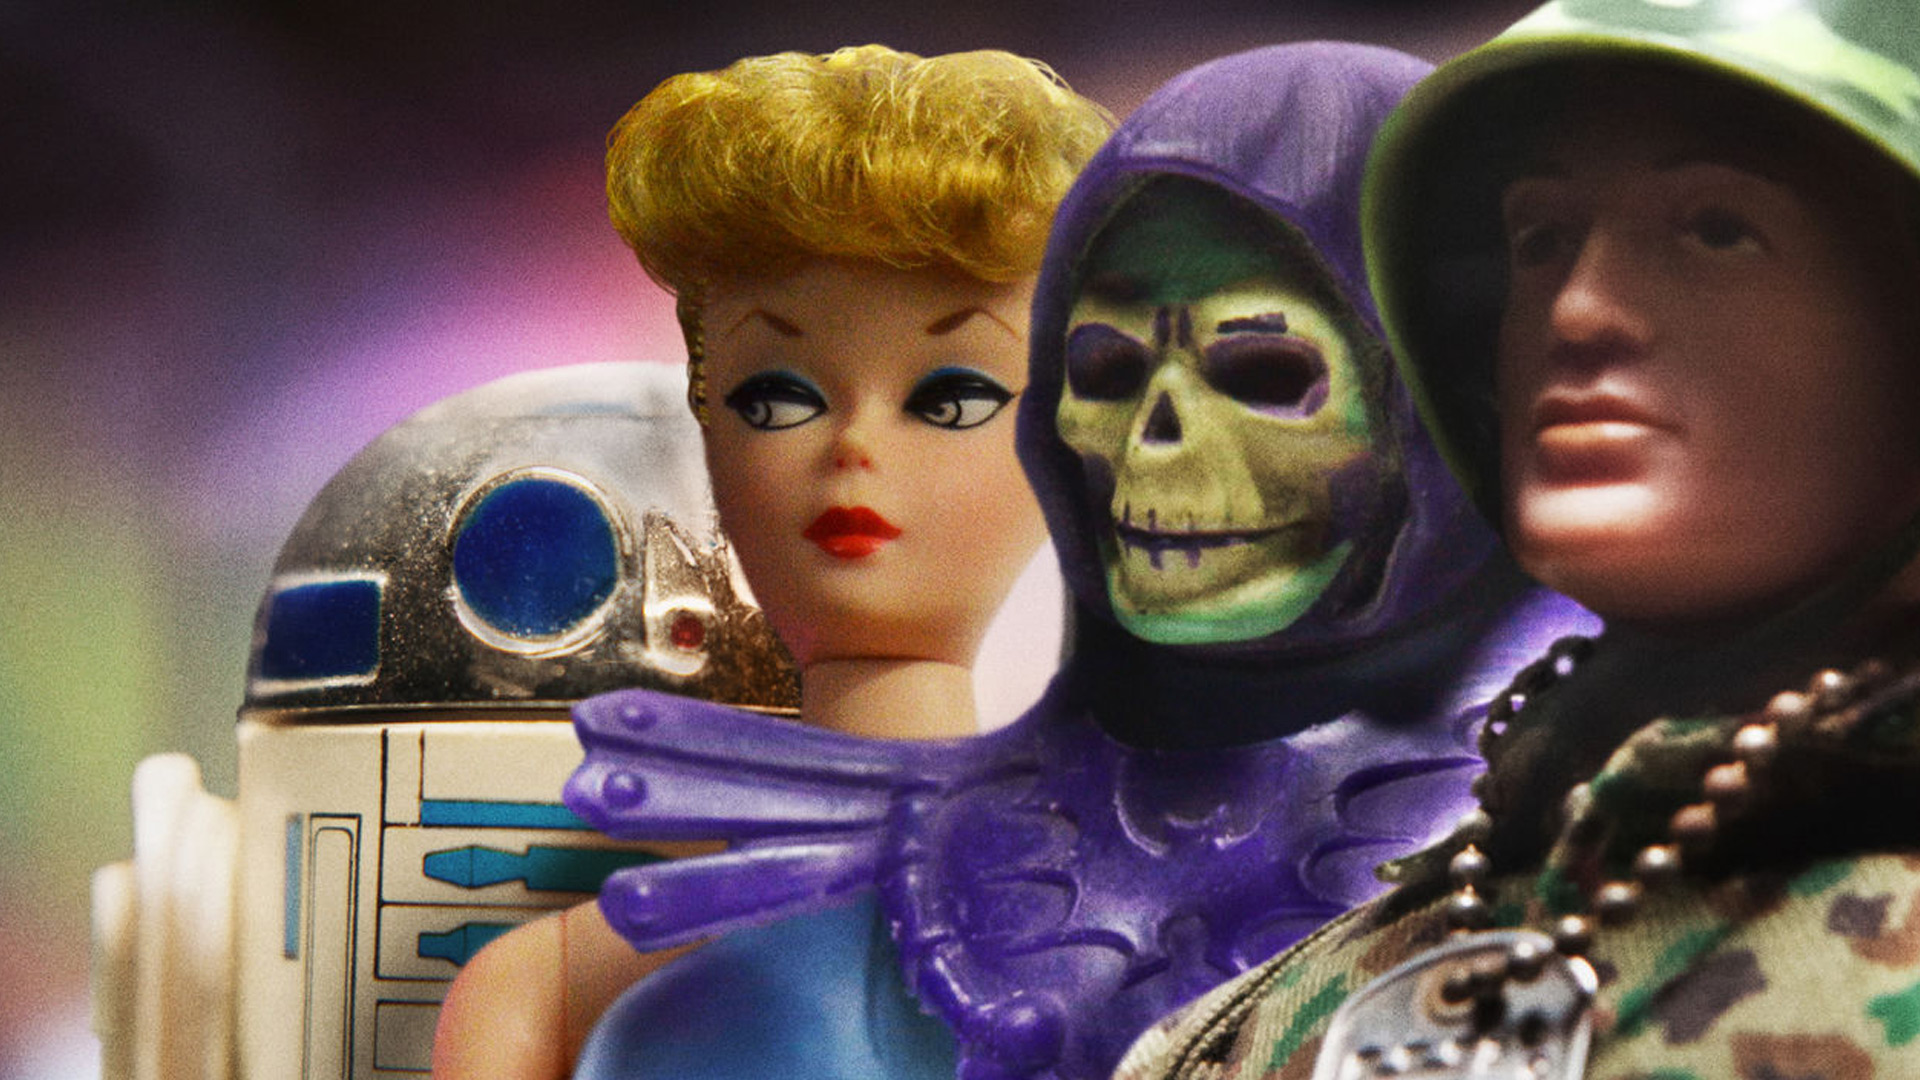 Brian Volk-Weiss Talks The Toys That Made Us